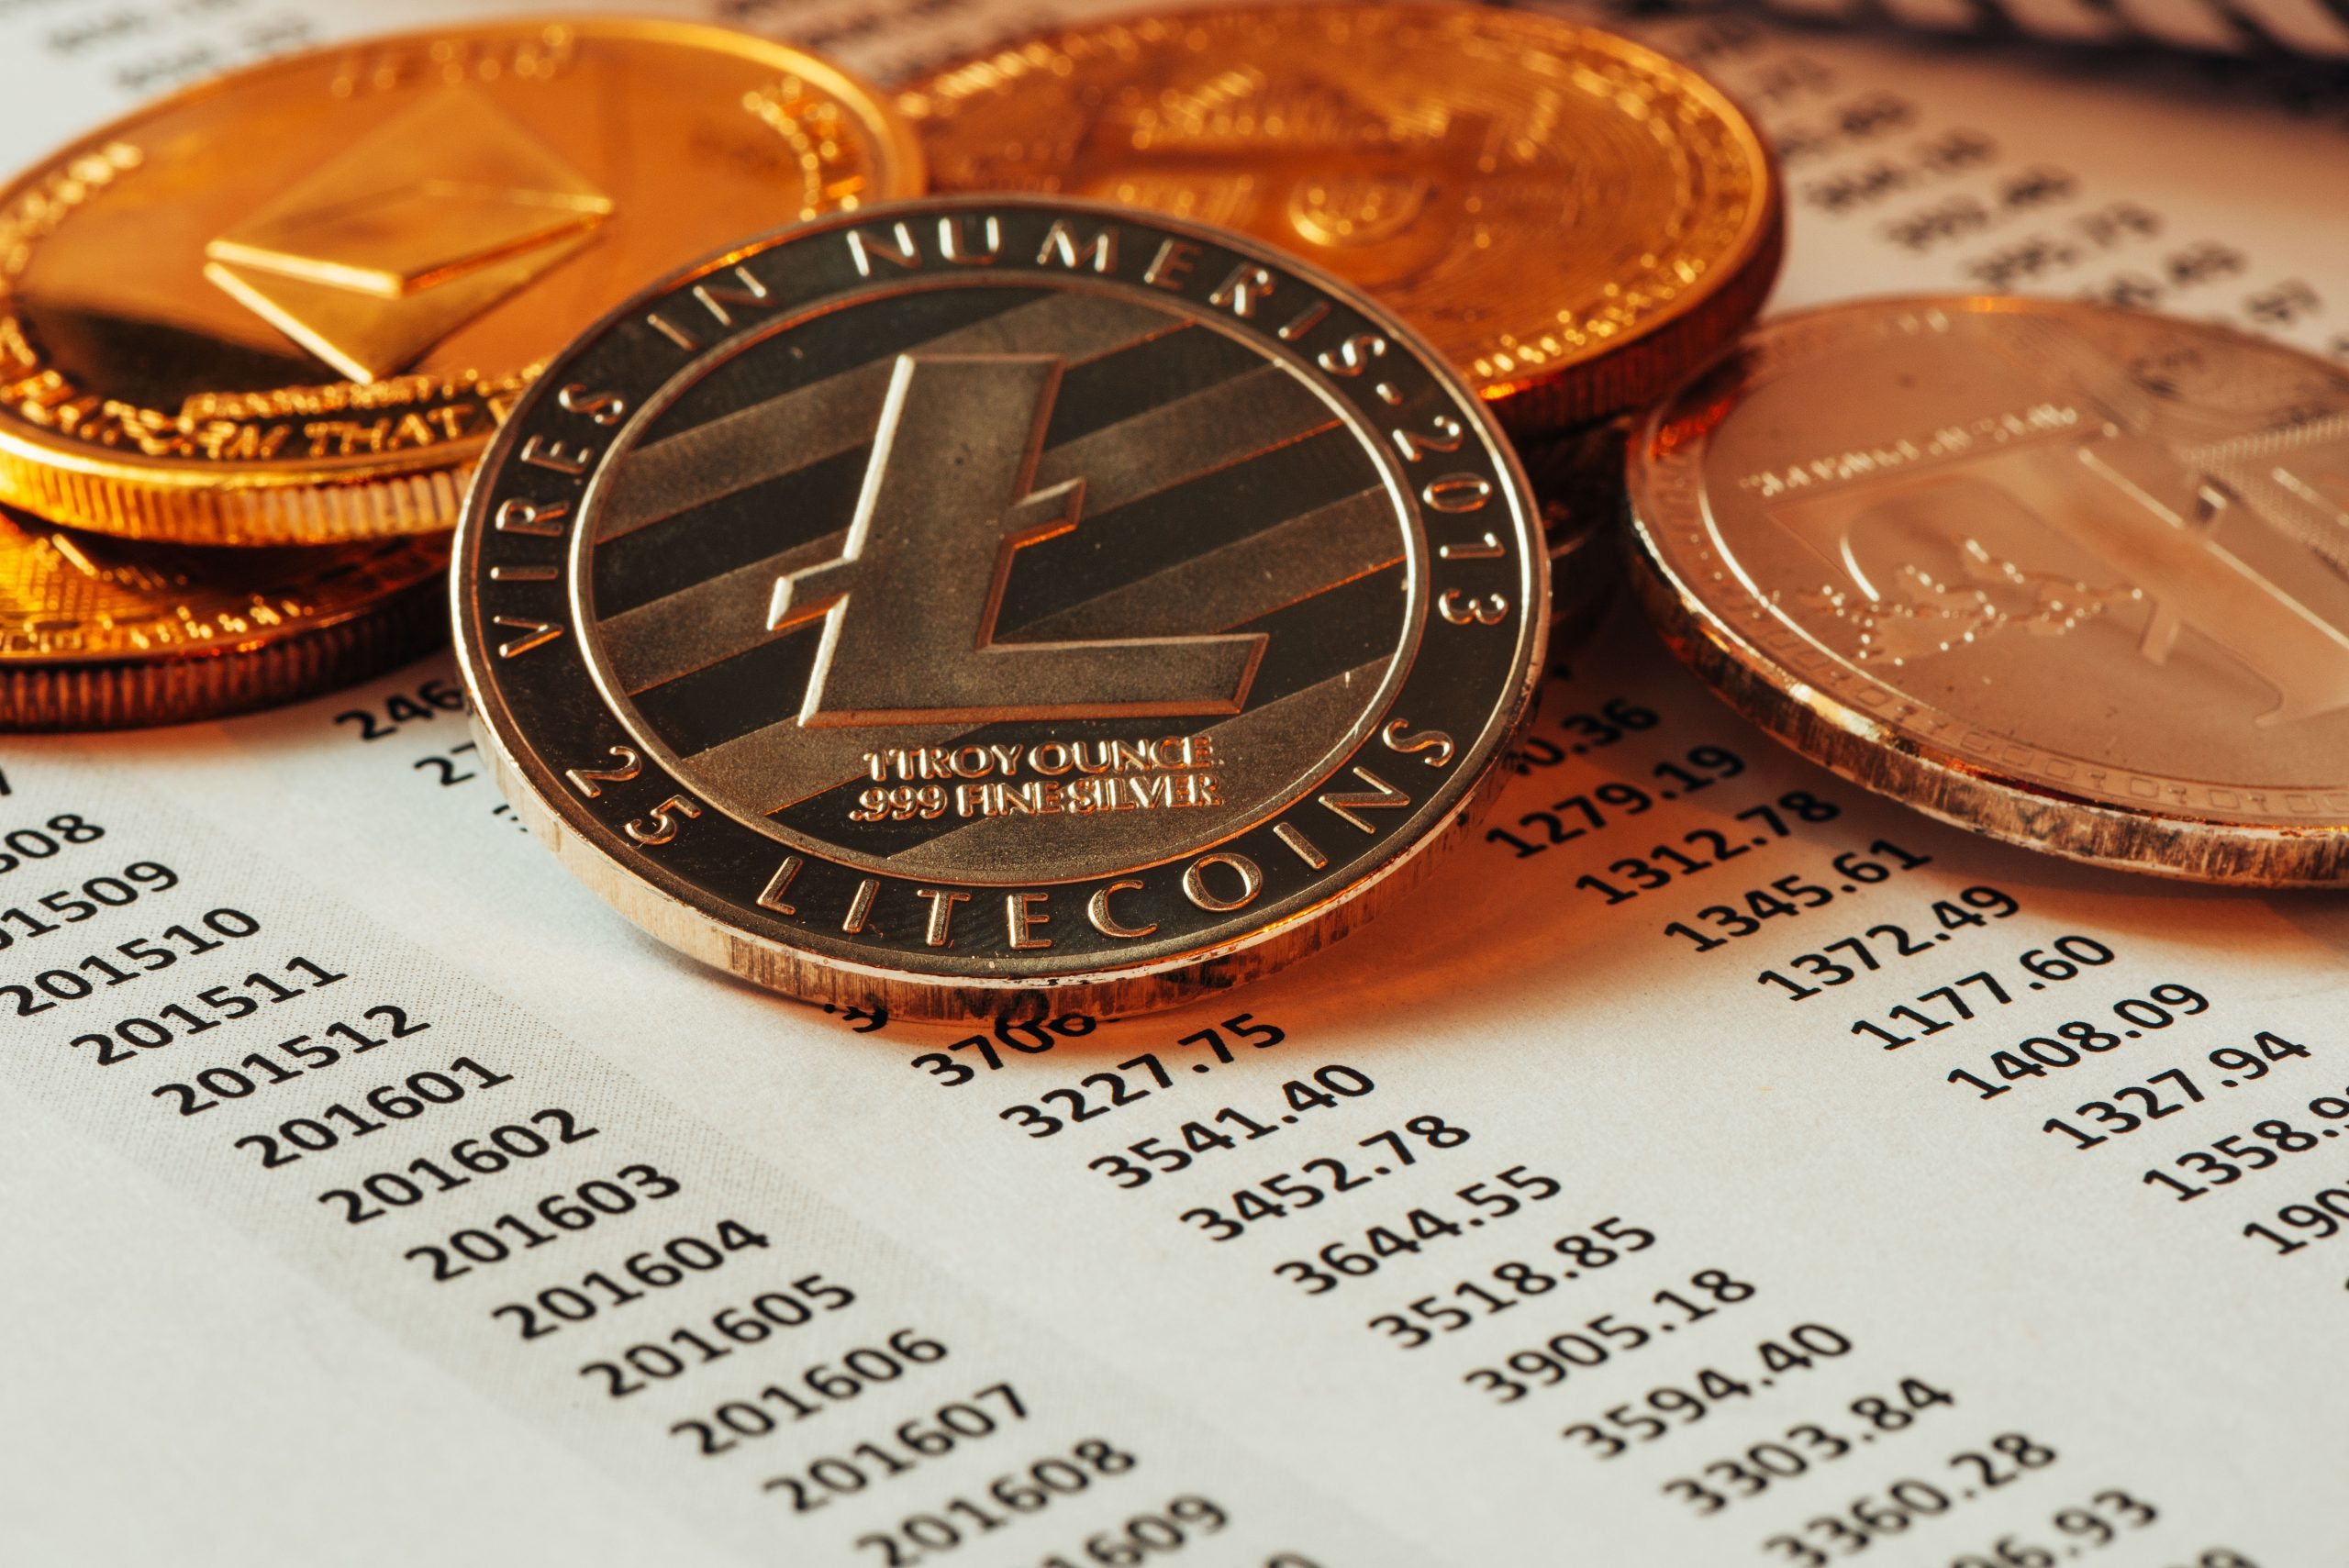 Litecoin cryptocurrency coin